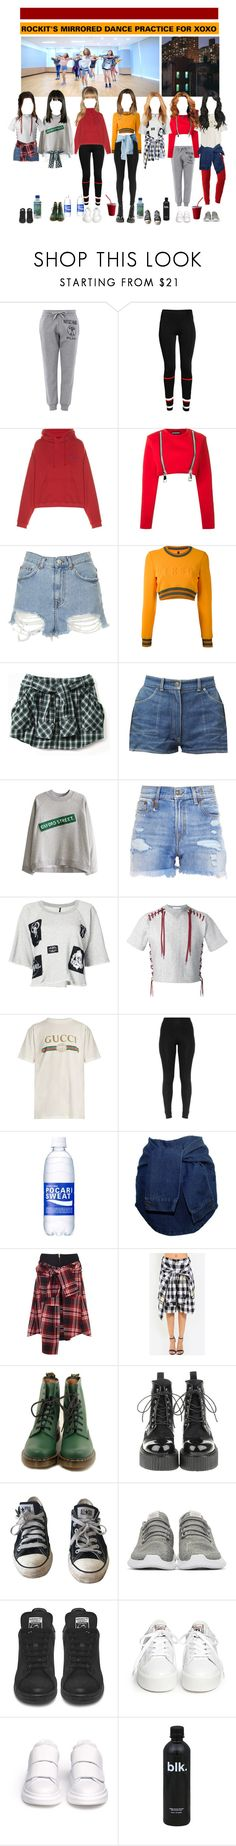 """«MIRRORED DANCE PRACTICE» ROCKIT (XOXO)"" by cw-entertainment ❤ liked on Polyvore featuring Moschino, Givenchy, Vetements, Nicopanda, Topshop, Versus, R13, Unravel, Facetasm and Gucci"